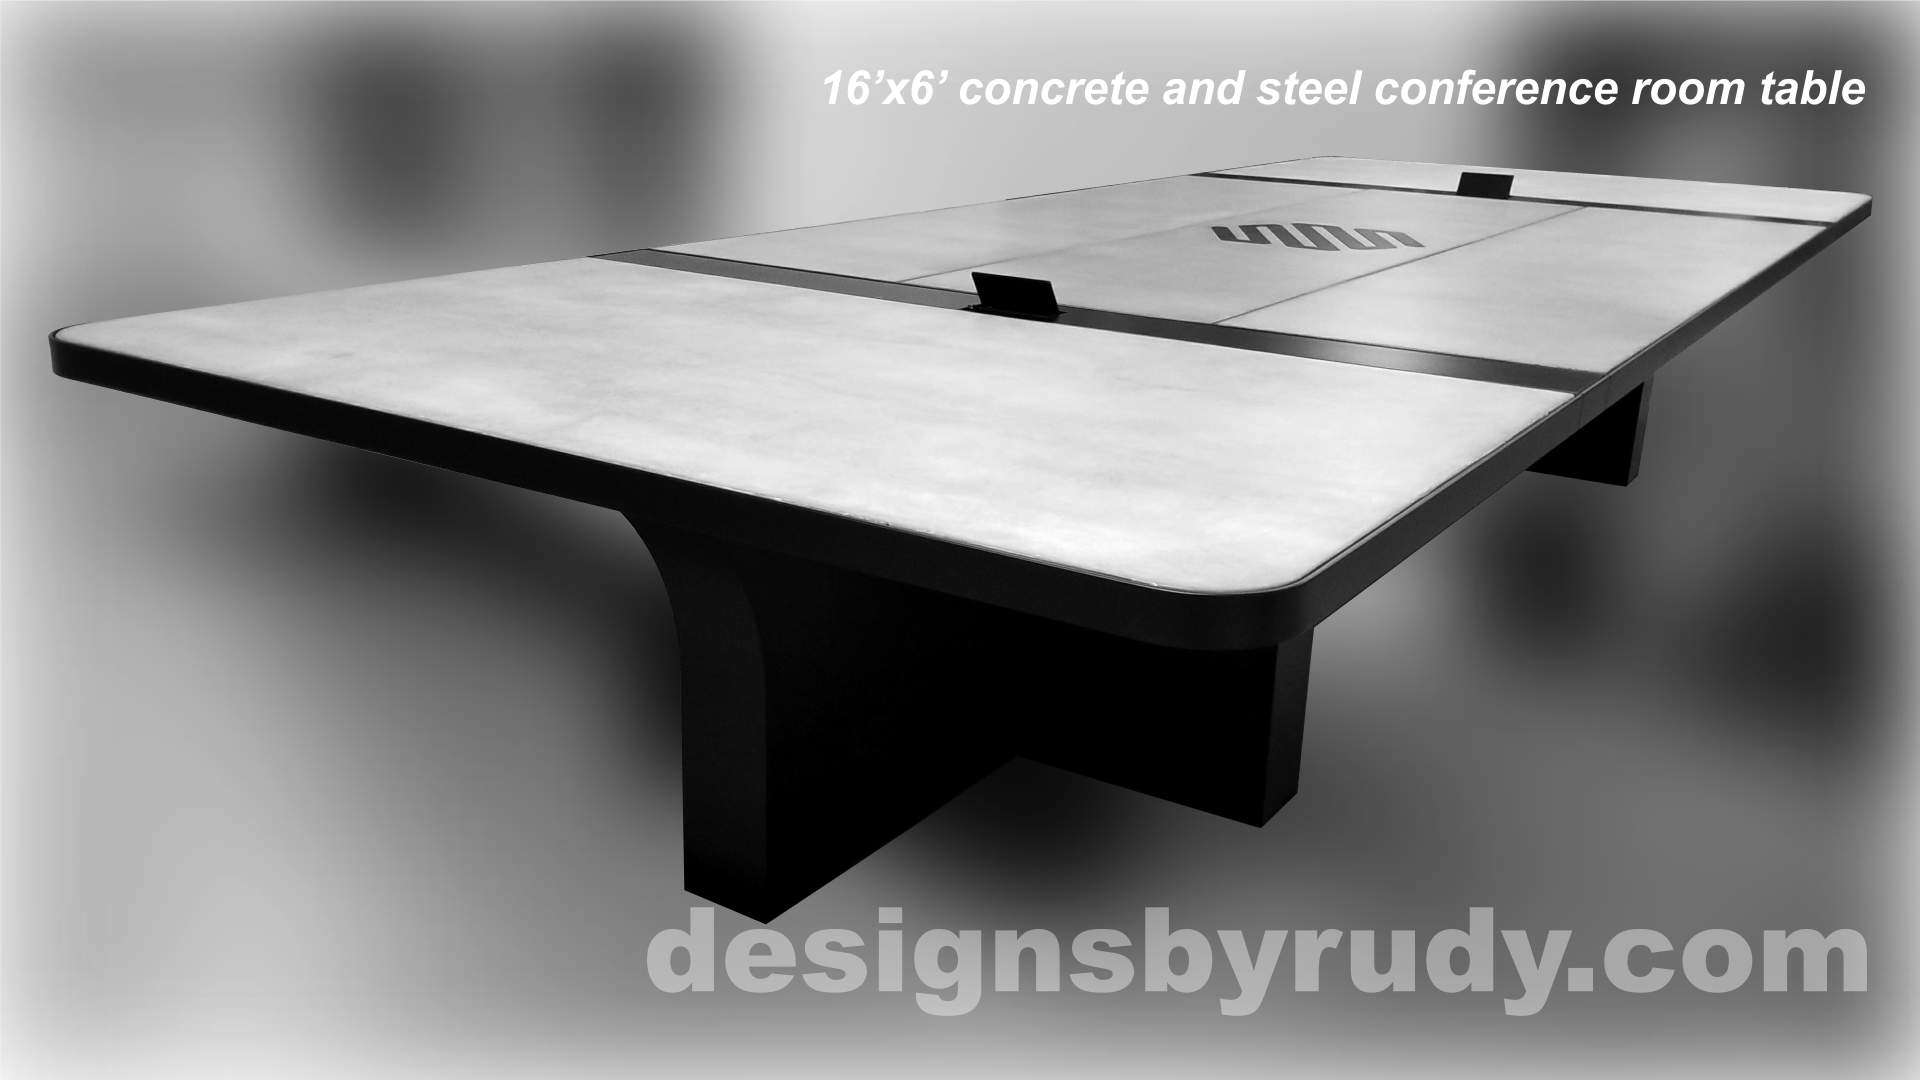 2 Concrete and Steel Conference Room Table for Markforged finished left view Designs by Rudy